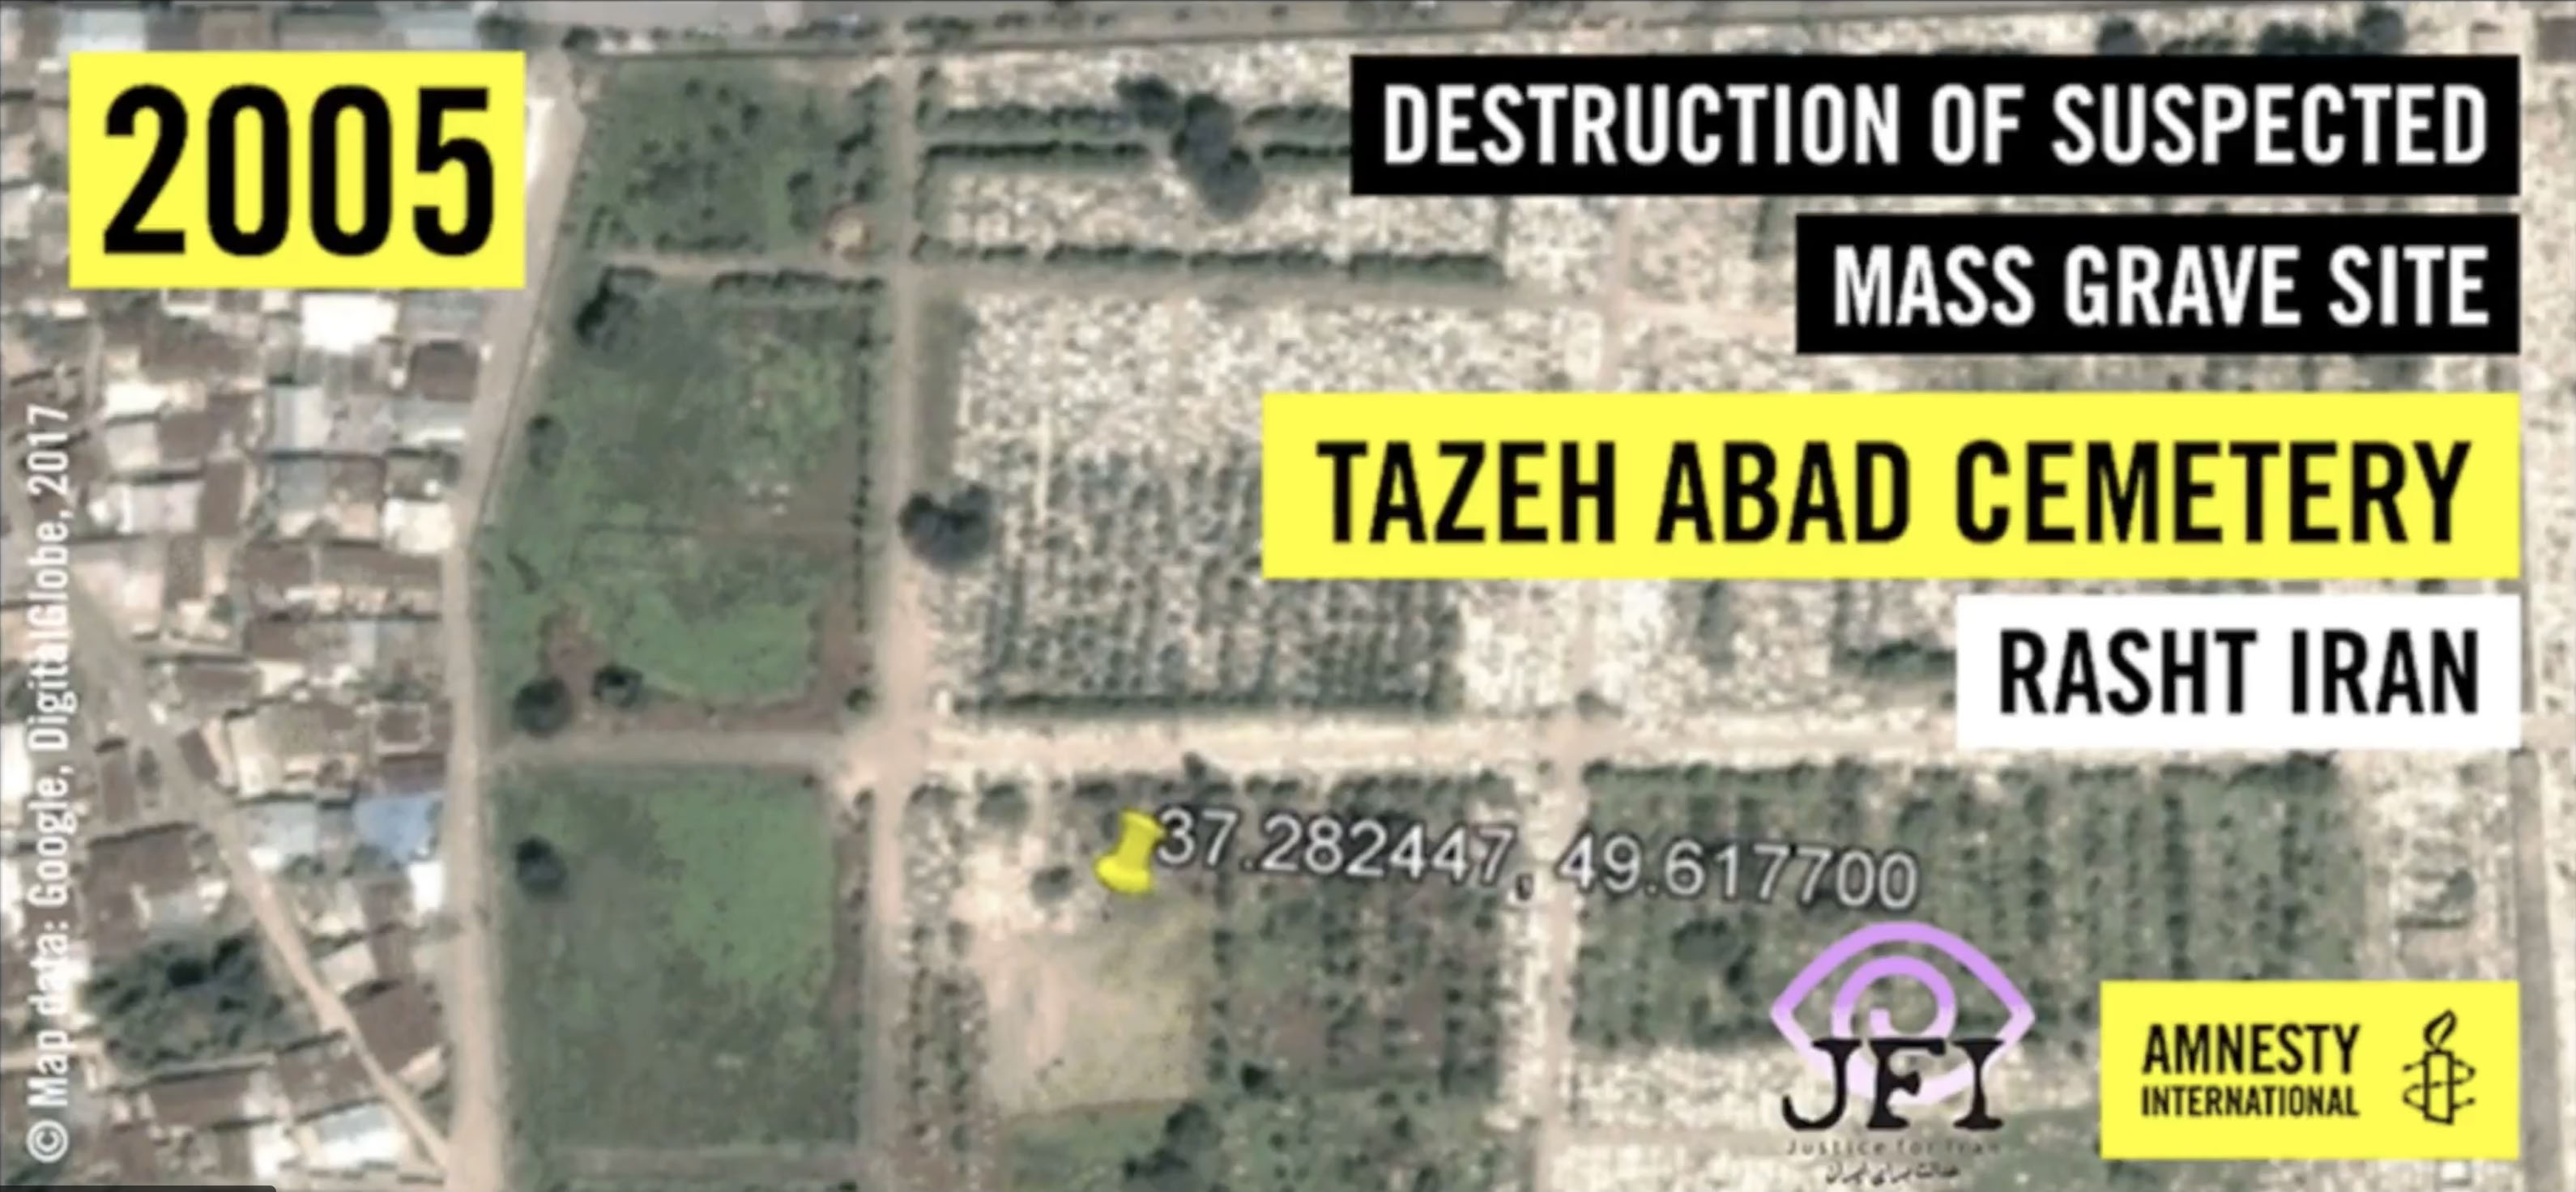 Satellite imagery of the destruction of mass graves